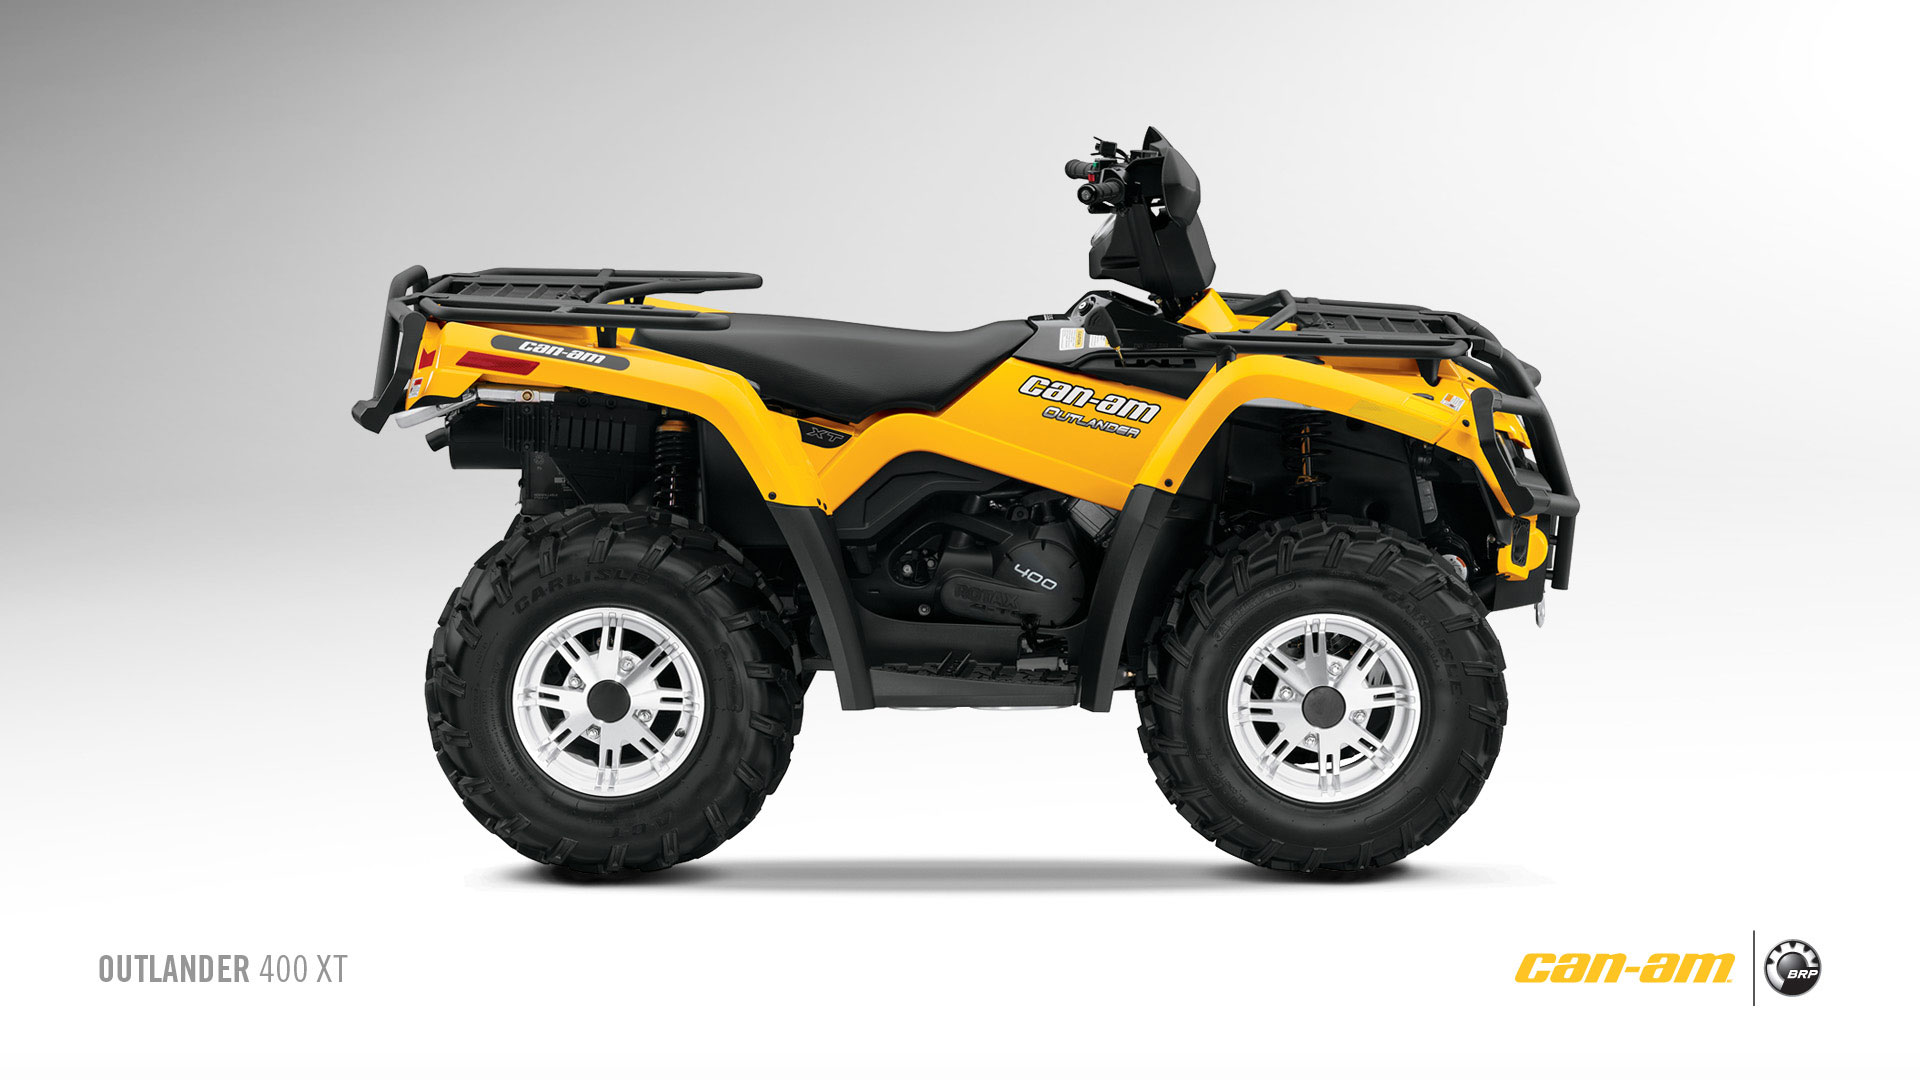 quad can am 400 xt